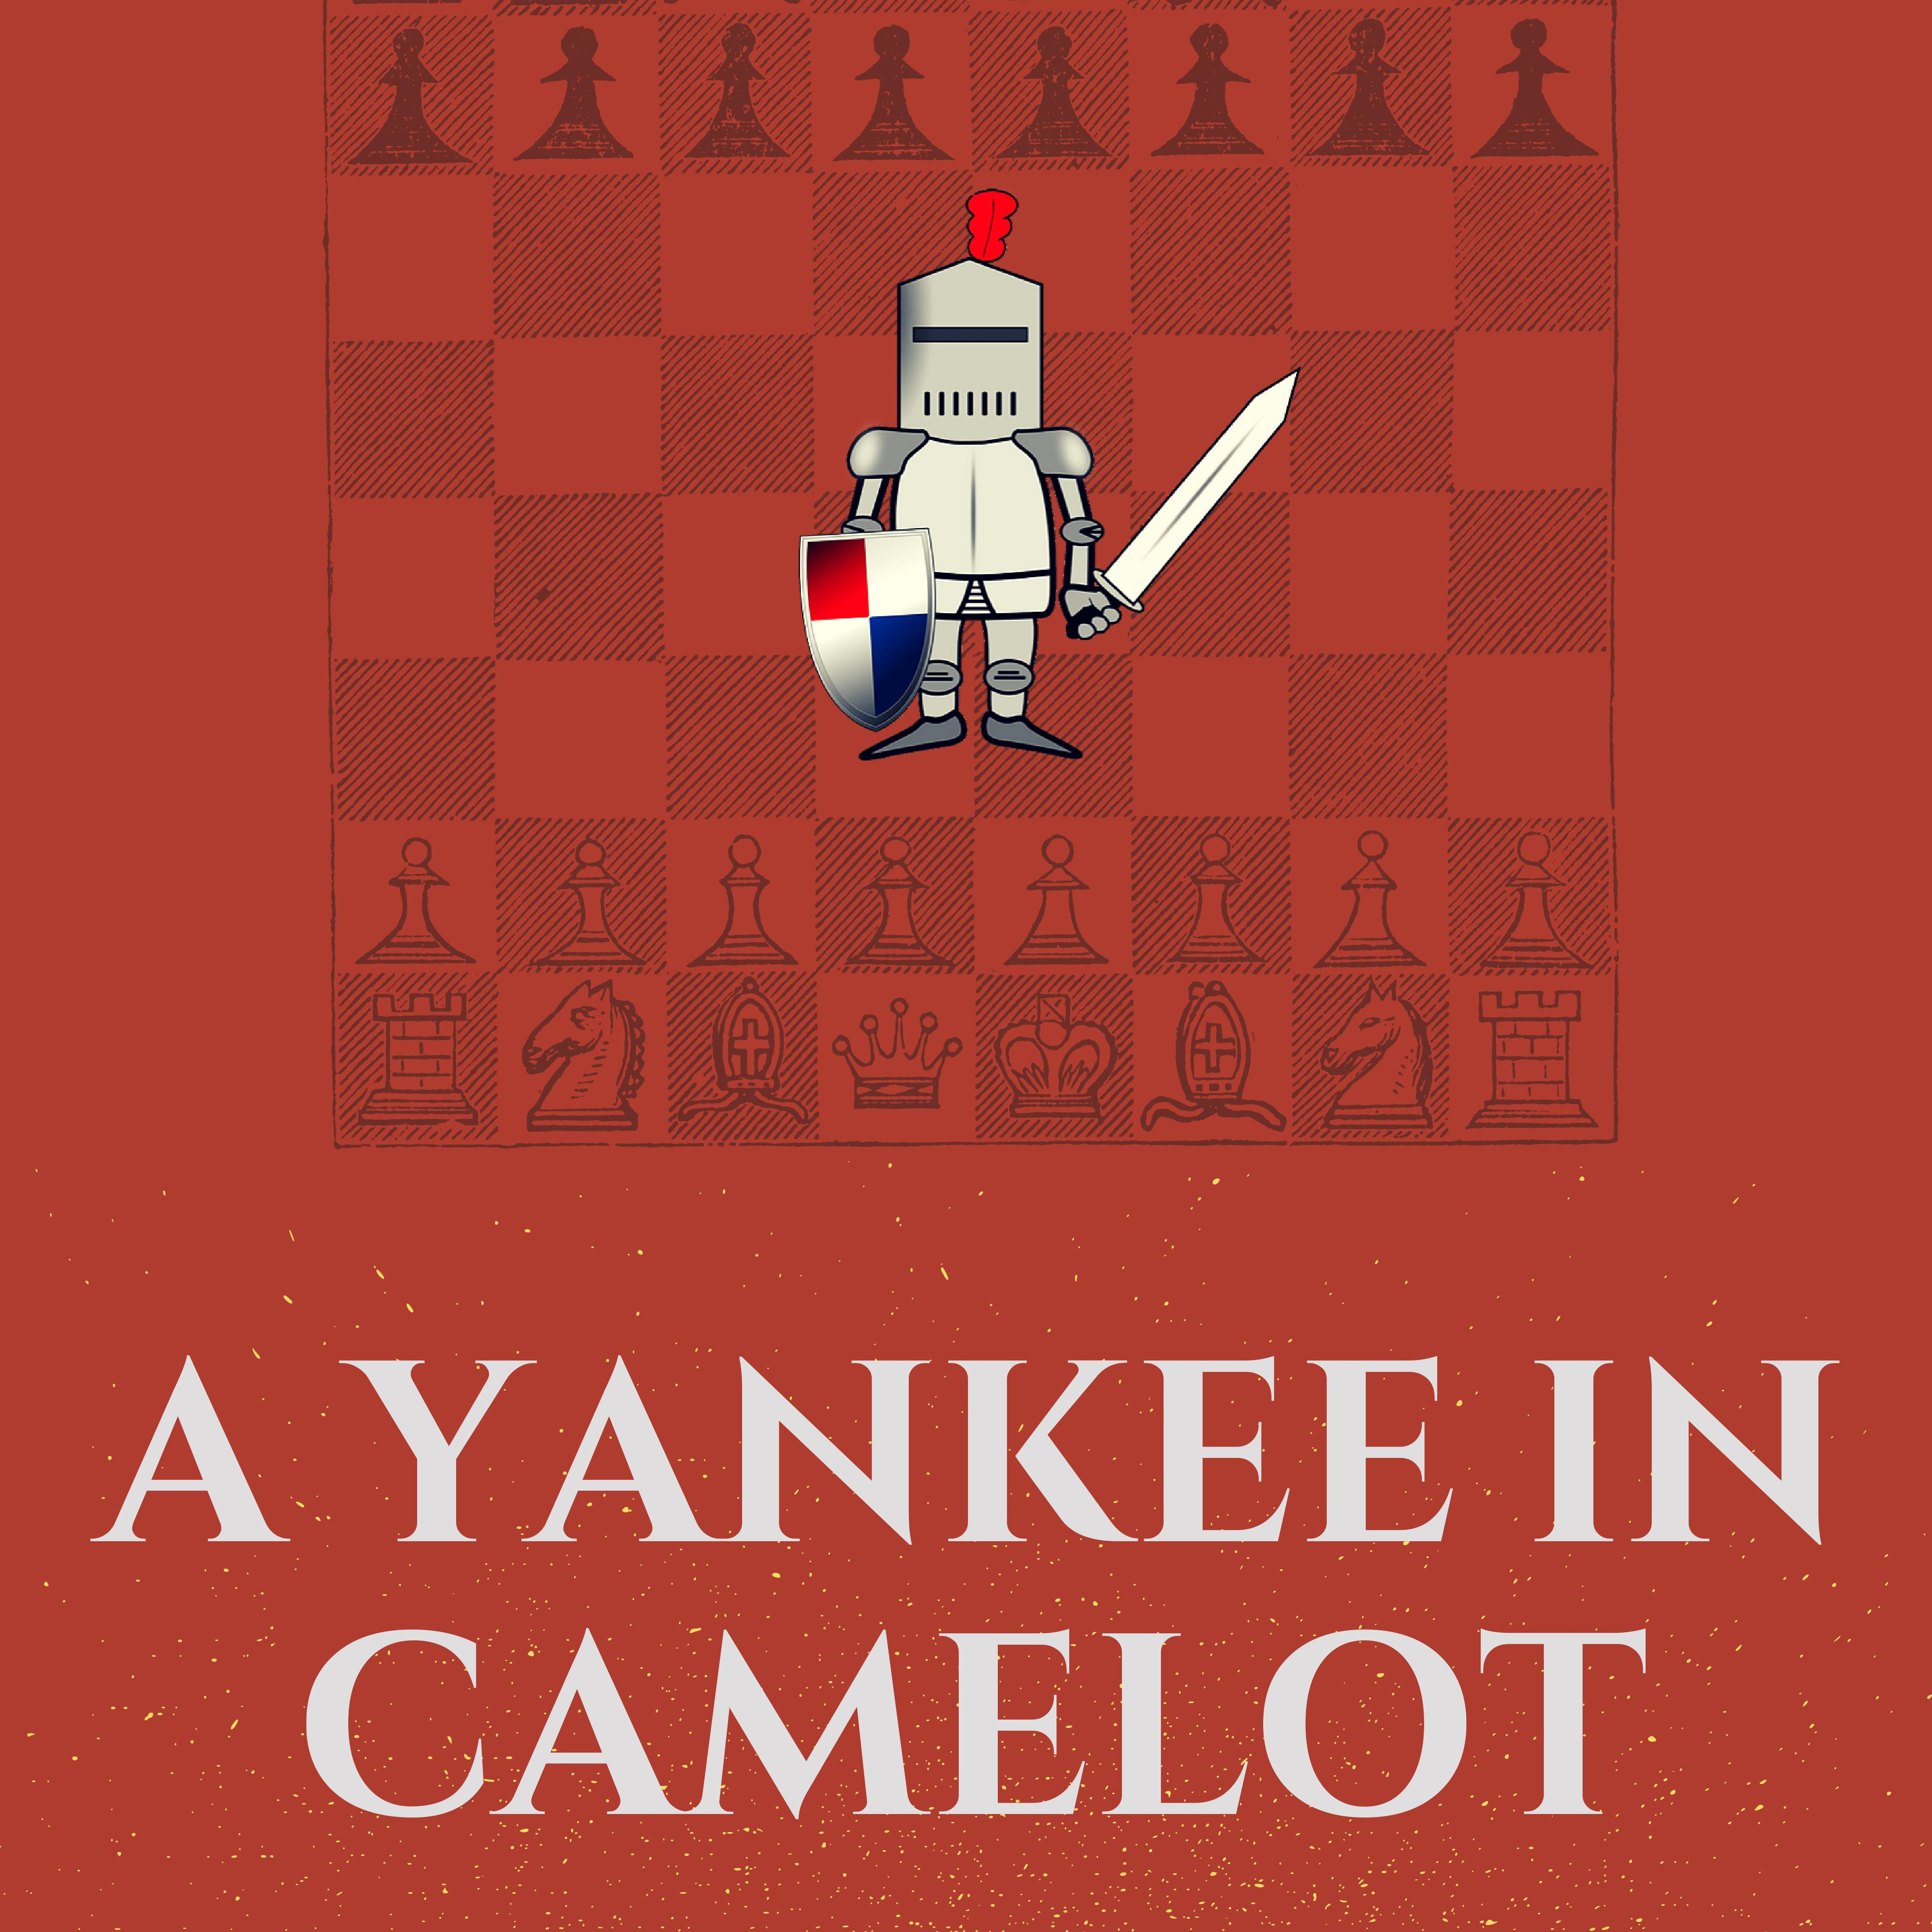 A red book cover with a cartoon image of a knight standing on a vintage chessboard.